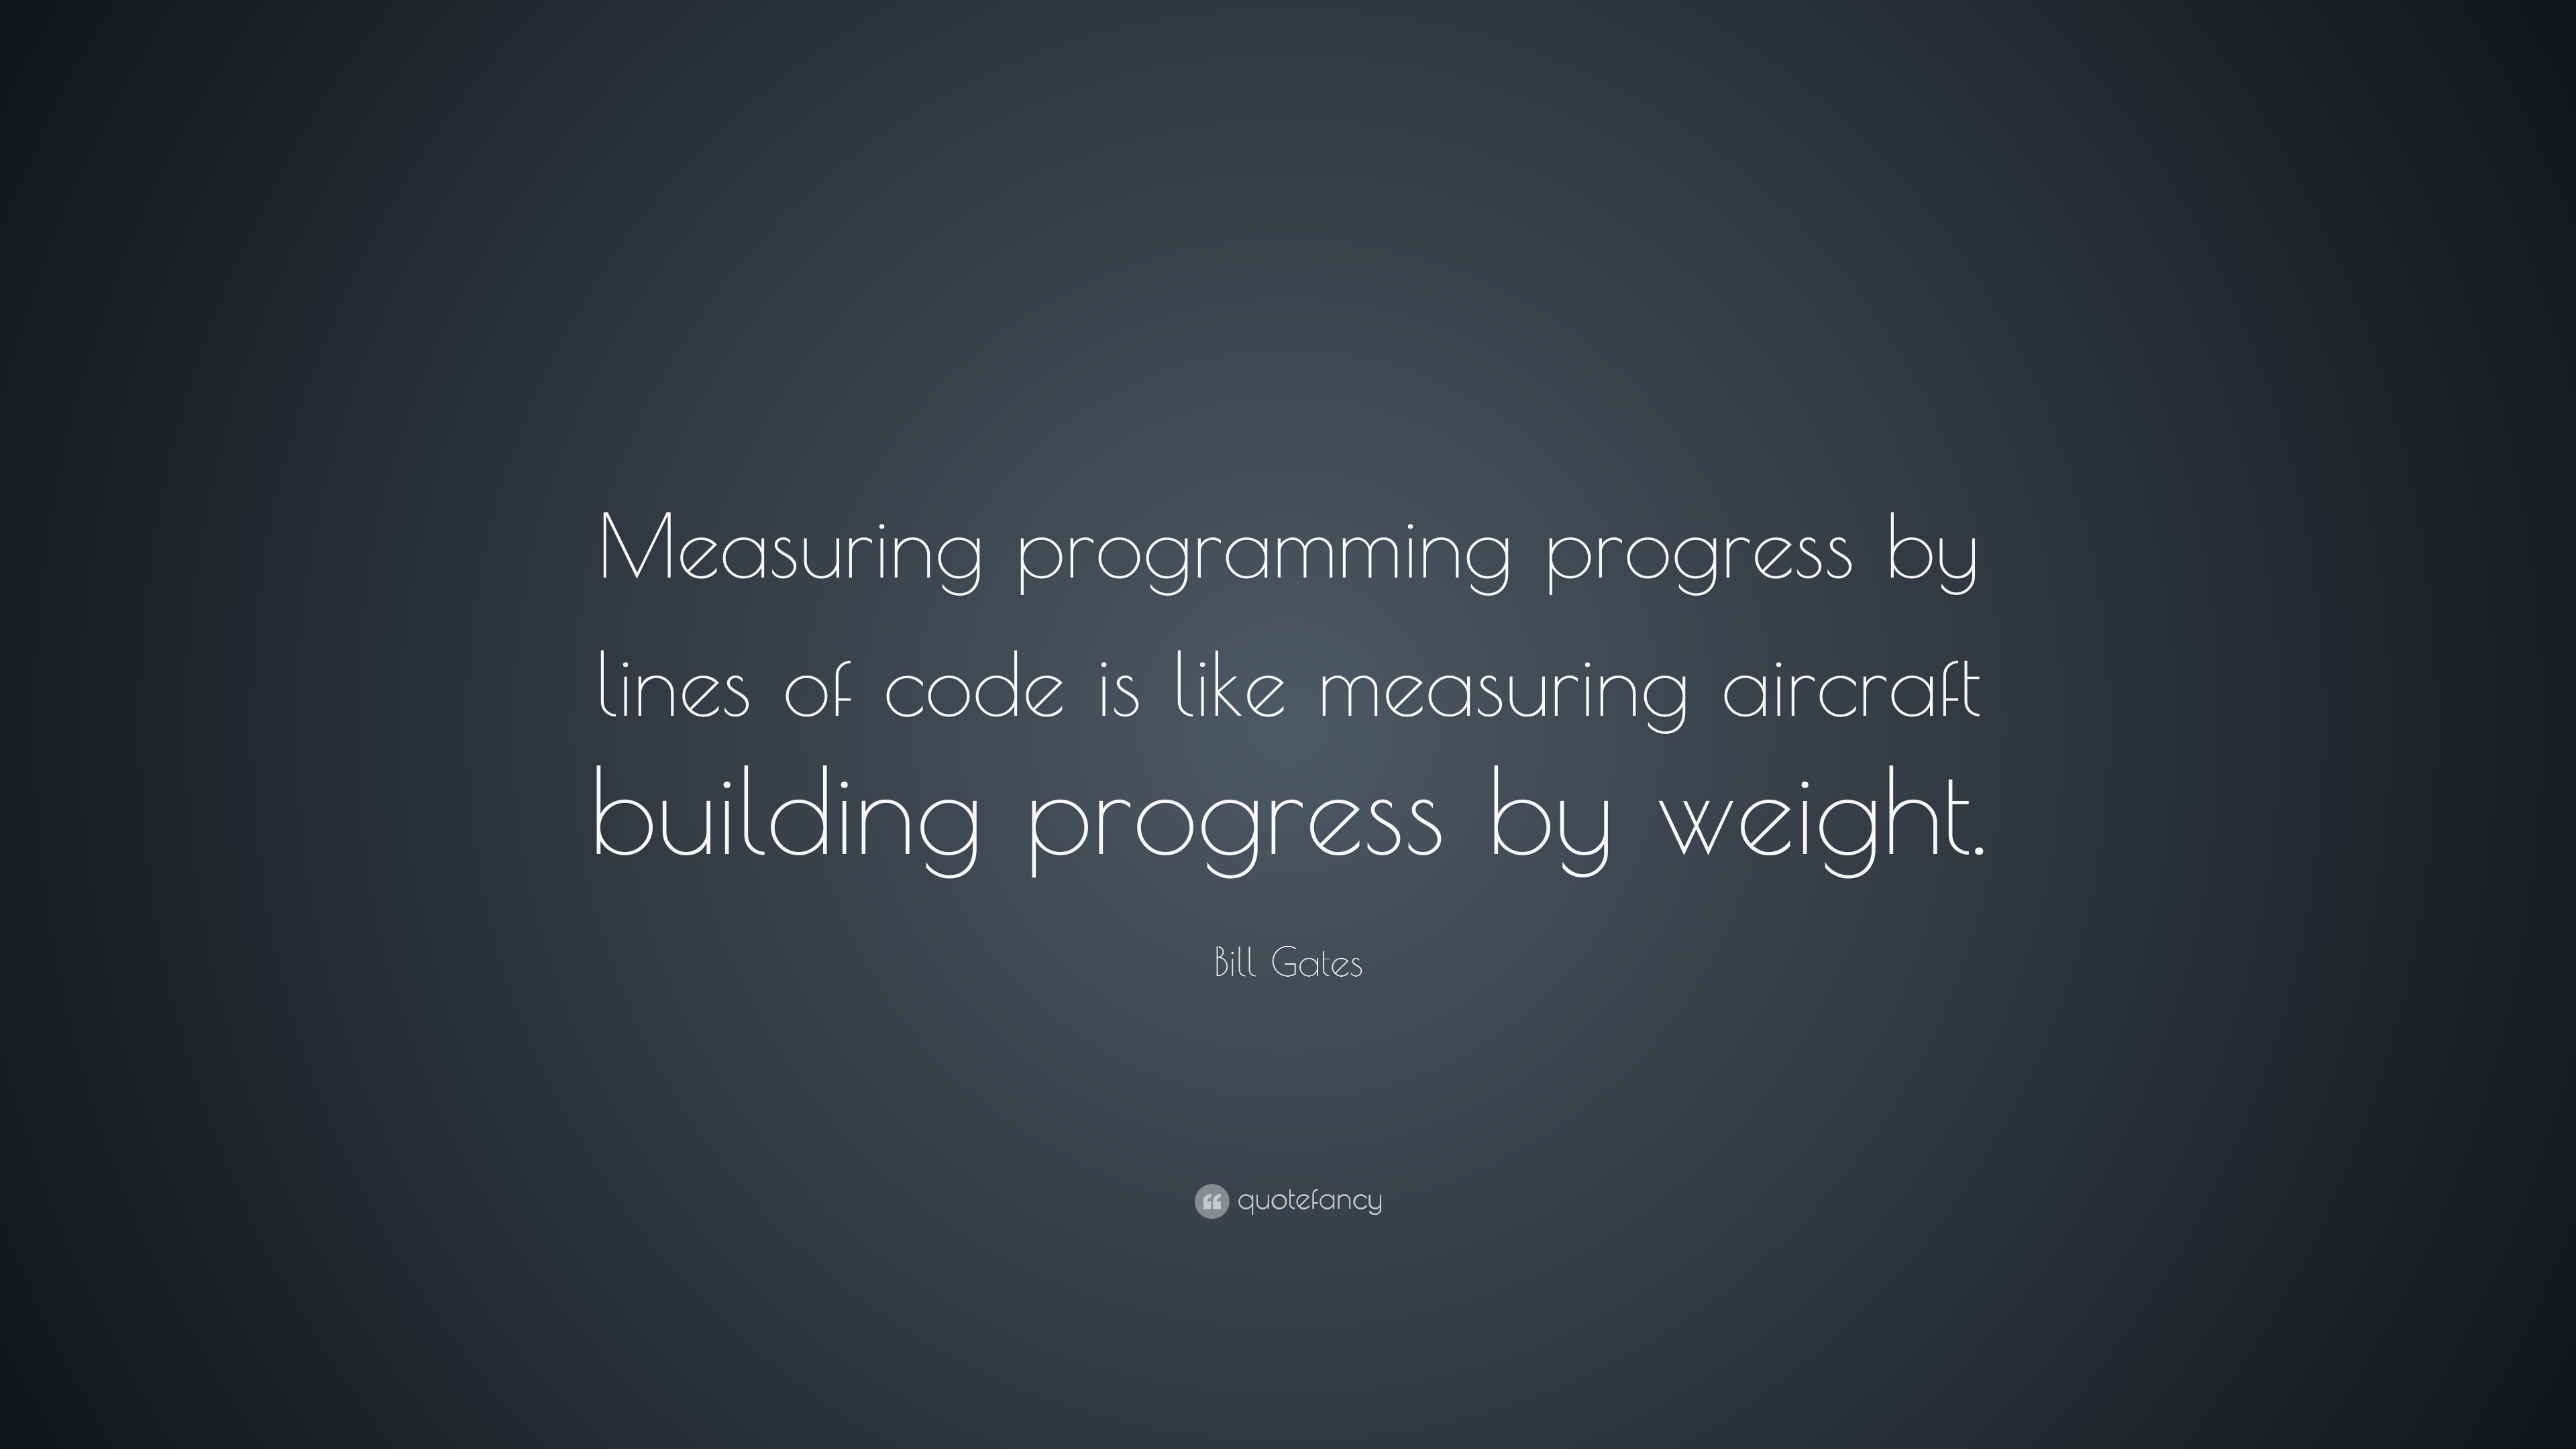 Bill Gates Measuring Programming Progress By Lines Of Code Is Like Mea...